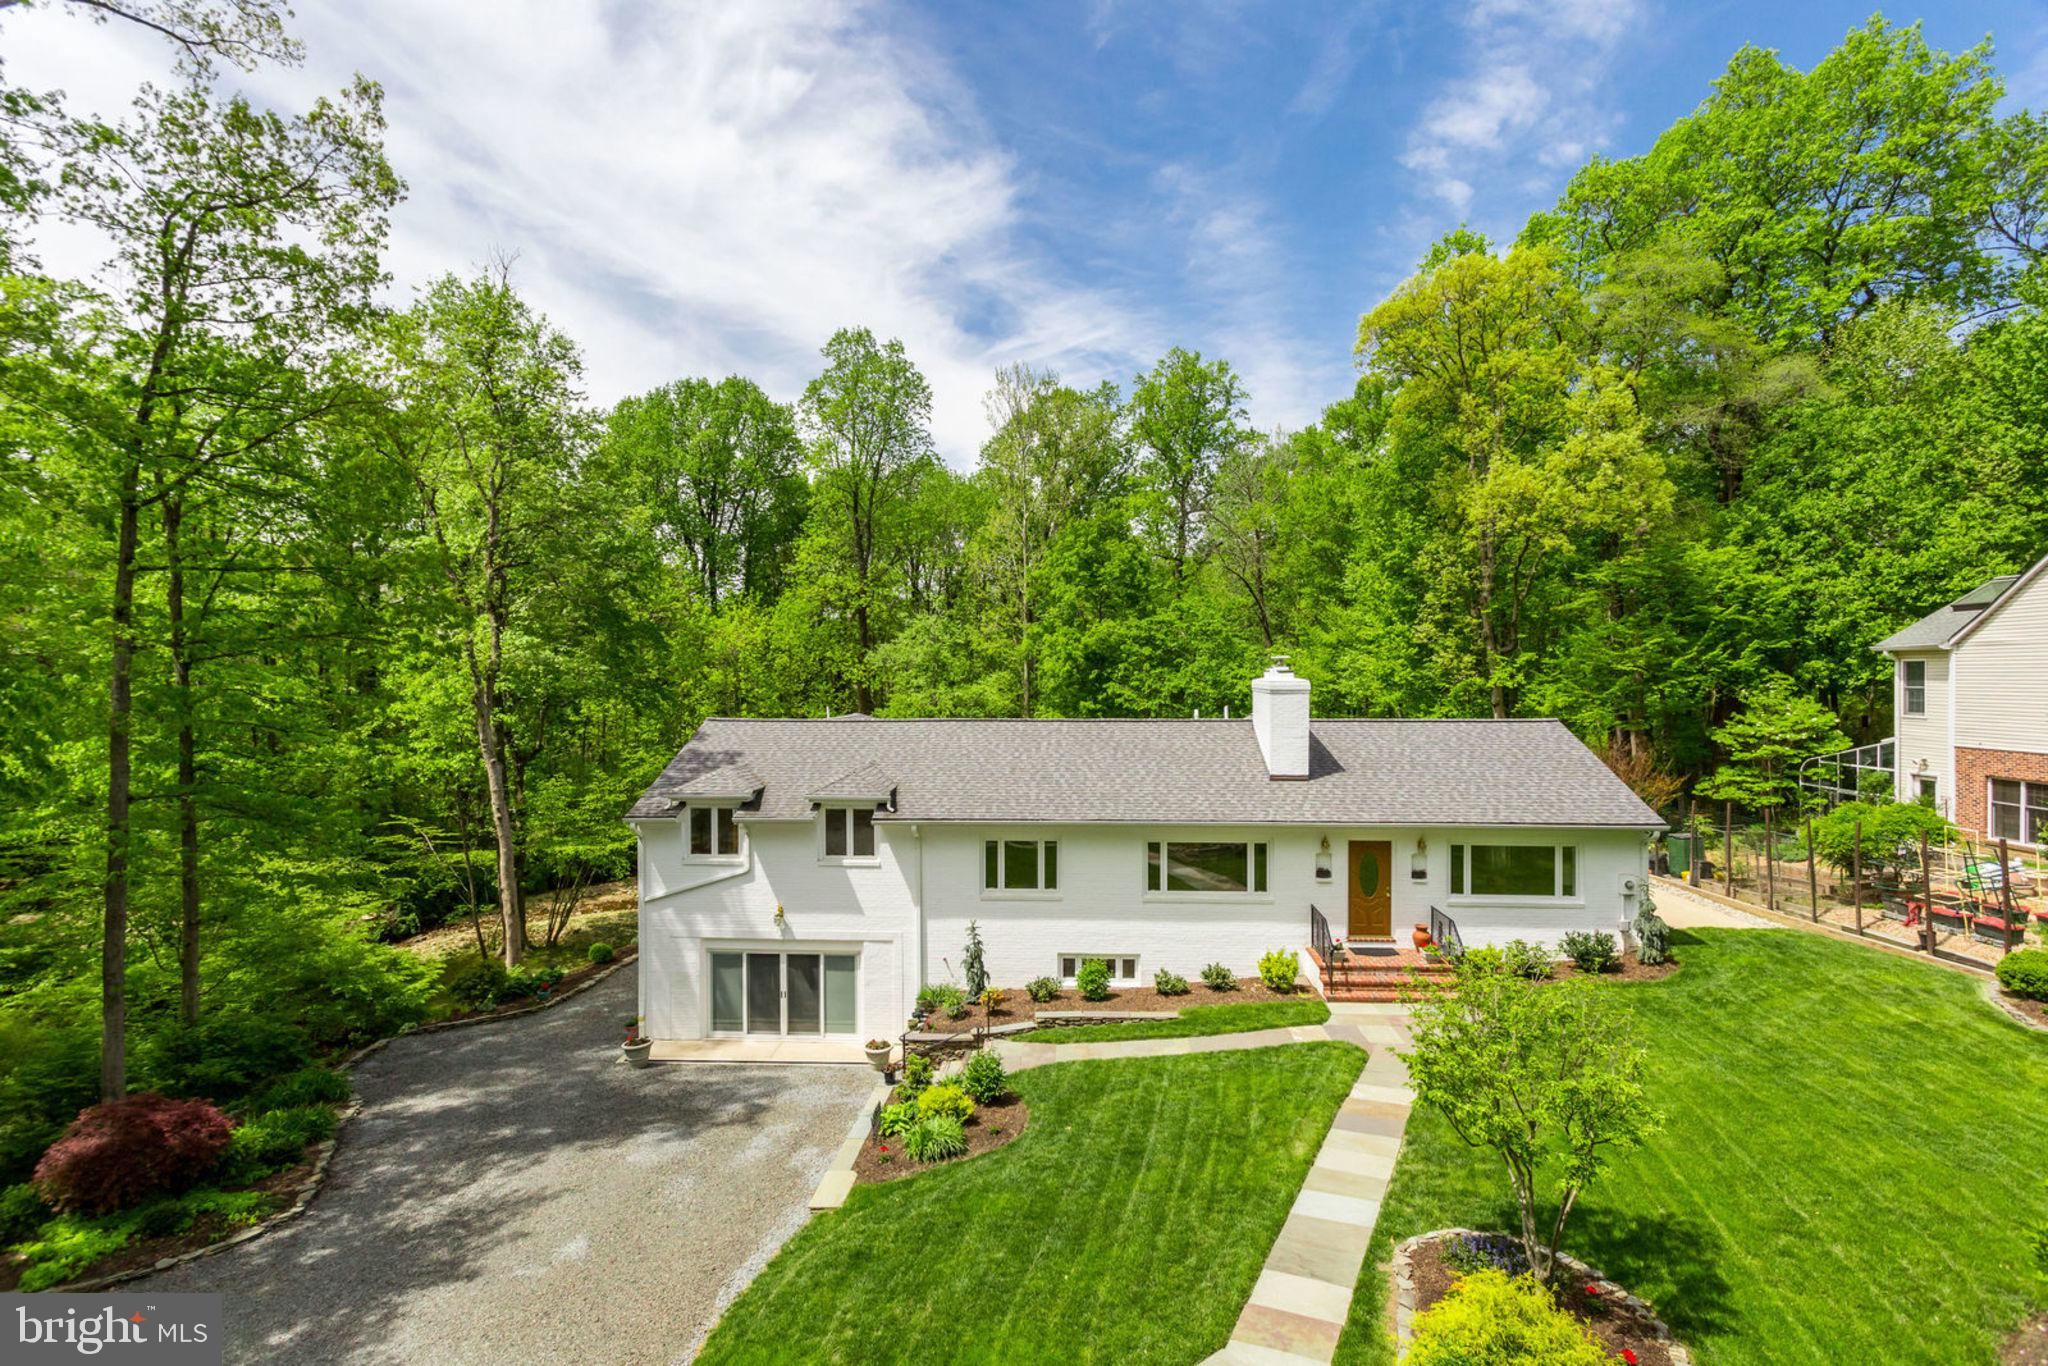 """**OPEN SUNDAY 1PM-4PM** One-of-a-kind rambler on impeccably landscaped lot backing to peaceful stream and 20+ acres of parkland and Green Spring Gardens!  This home displays pride in ownership at the highest level - expanded and rebuilt in 2004 with new framing, electrical, plumbing, mechanical systems, and much more!  5 bedrooms, 3.5 baths and nearly 4,800 sq ft of finished space. Bright and open floorplan with chef's kitchen, including oversized island, top of the line appliances (48"""" Wolf range + vent hood, 48"""" GE Monogram refrigerator), and 4 skylights to bring in lots of natural light.  New hardwoods throughout the main/upper levels and new carpet on the walkout lower level.  All completely new bathrooms as part of the 2004 rebuild/expansion (plumbing, tile, fixtures, location, etc.).  Luxurious master suite with large walk-in closet and French doors that overlook the serine backyard and stream. The attached master bath includes beautiful tile work, separate jetted tub, oversized shower, and large vanity.  The light filled lower level includes a huge rec room with gas fireplace, 2 spacious bedrooms, full bath, built-in cabinetry w/granite bar, tons of storage, and walkout to concrete patio.  New roof in 2013 with architectural shingles, R-30 attic insulation, newly lined wood-burning fireplace, and whole house vacuum system.  New custom shed with matching roof in 2017.  Original planned 2 car garage was converted to """"finished storage space"""". Meticulously maintained landscaping throughout entire property ~ pots do not convey.  Escape from the daily hustle and relax in this paradise of a setting just minutes from 395, Crystal City, and Washington DC!"""